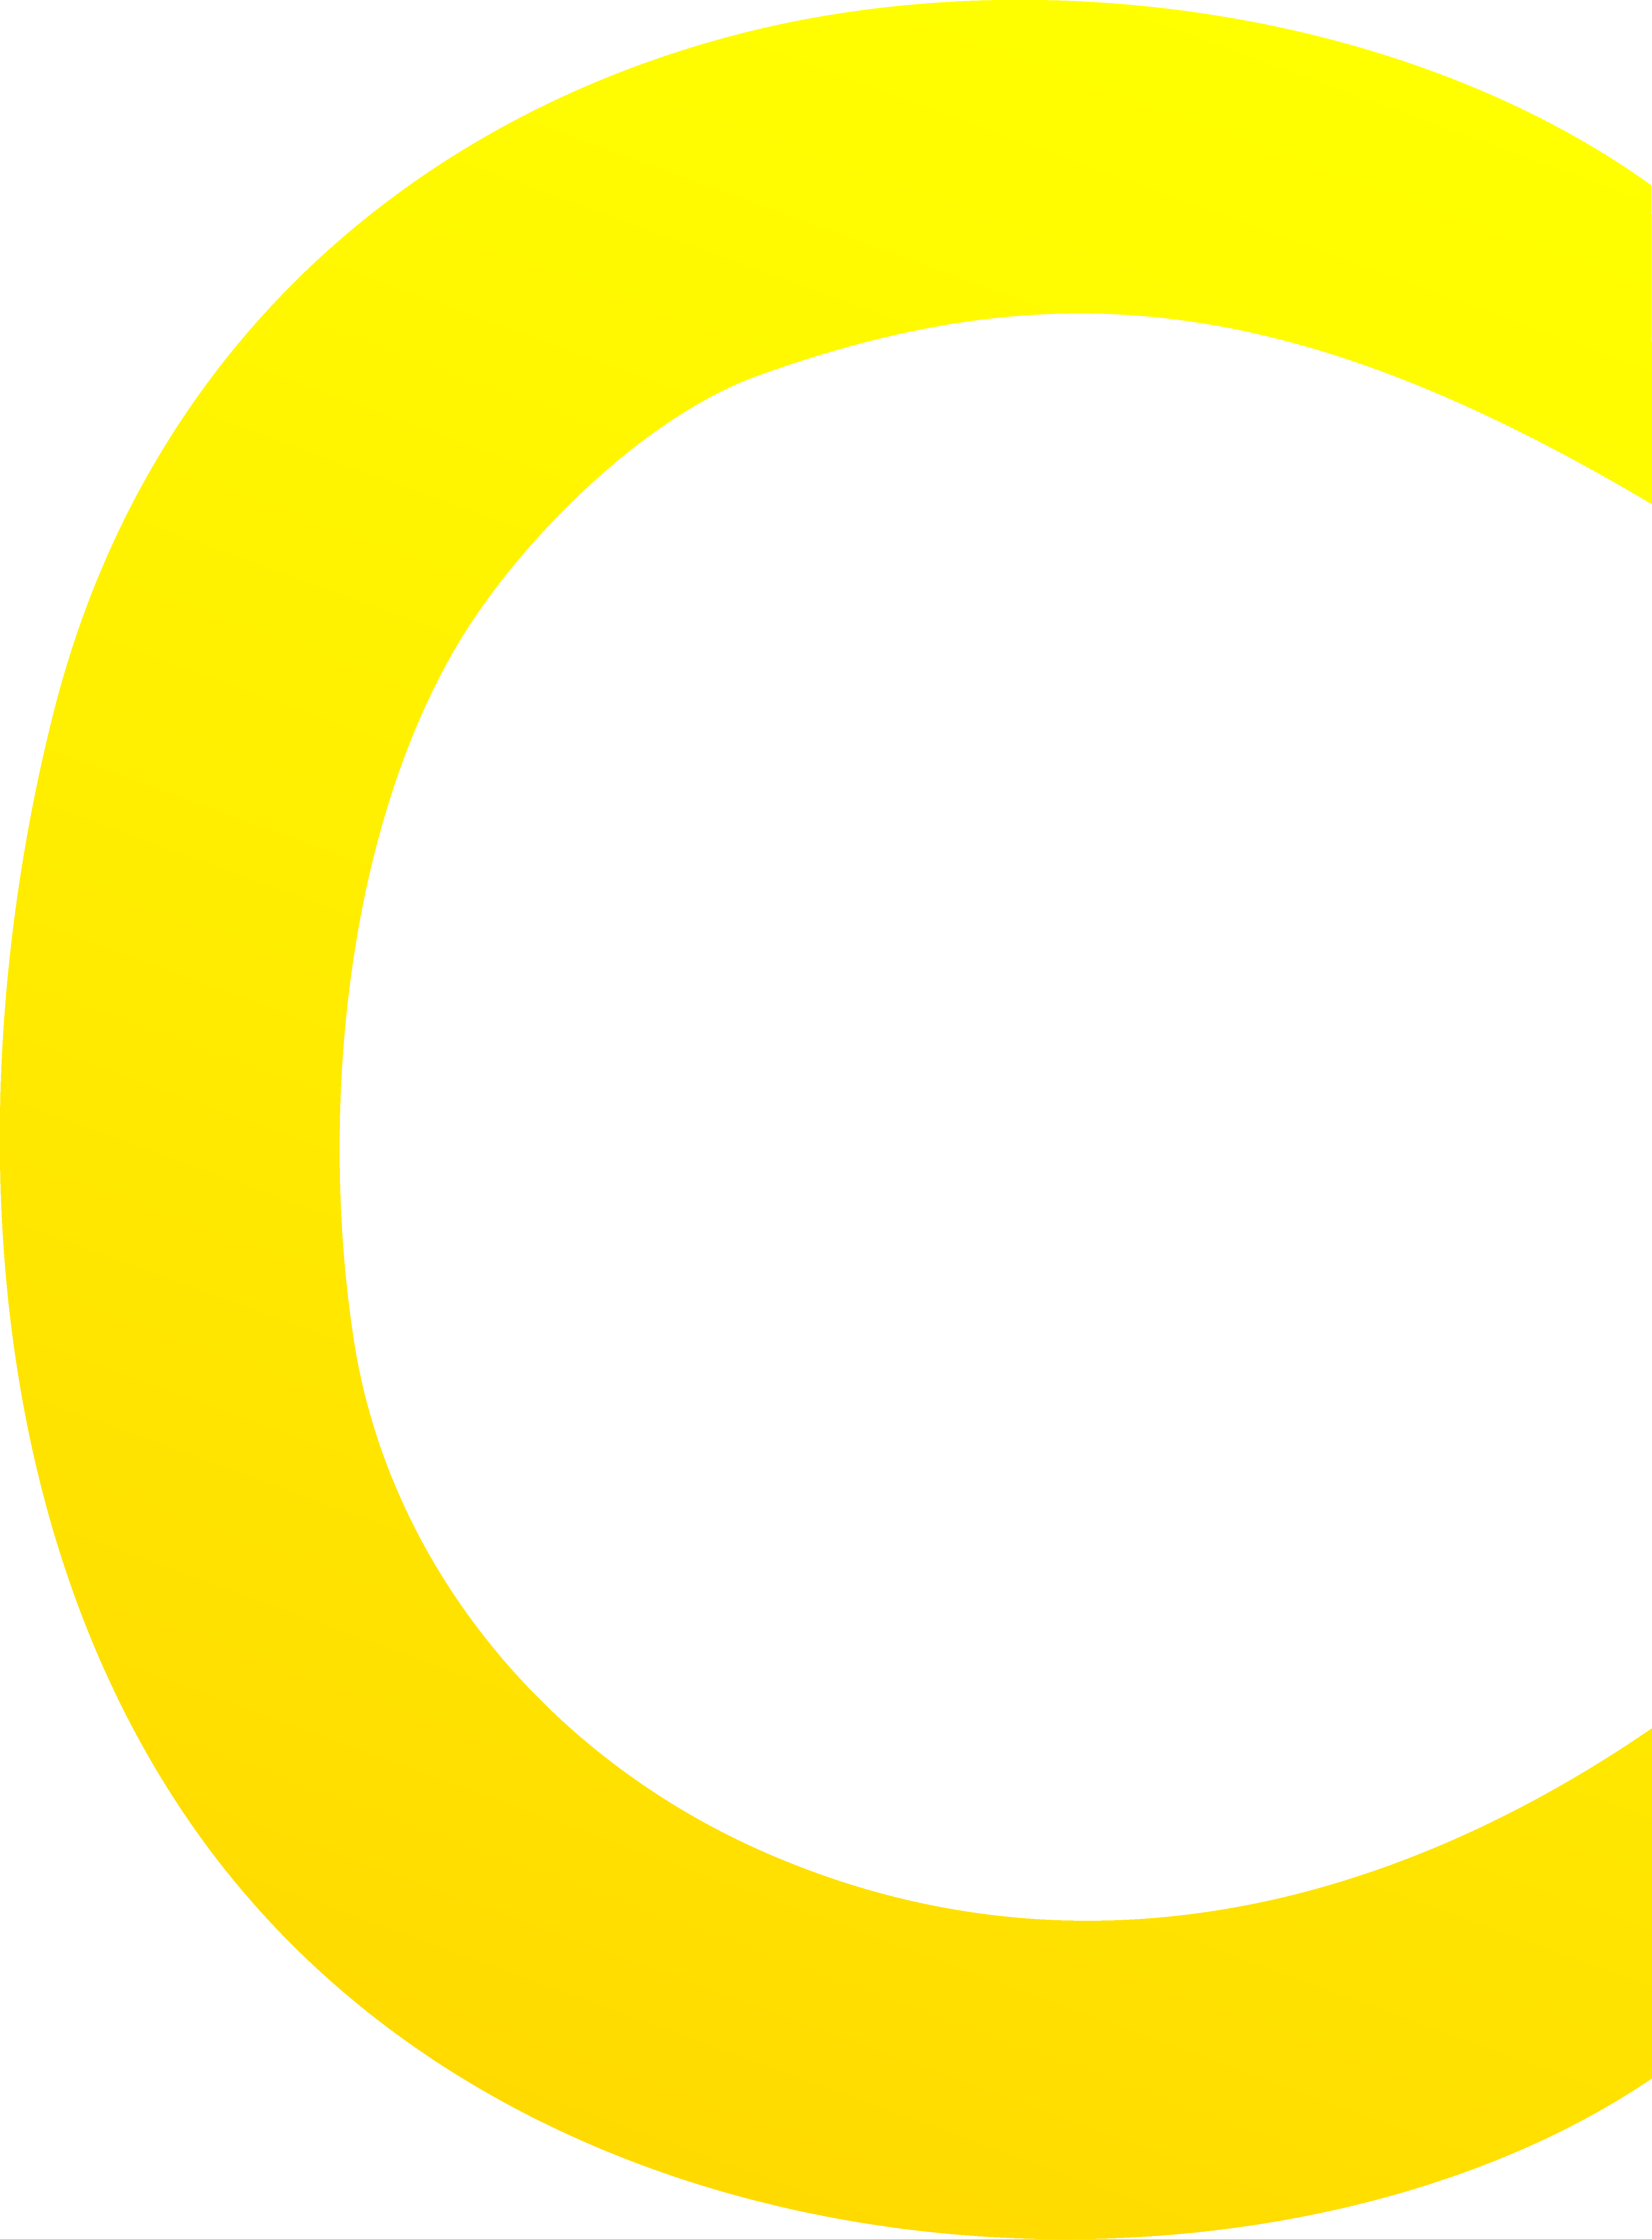 transparent Letters clipart yellow. The letter c free.